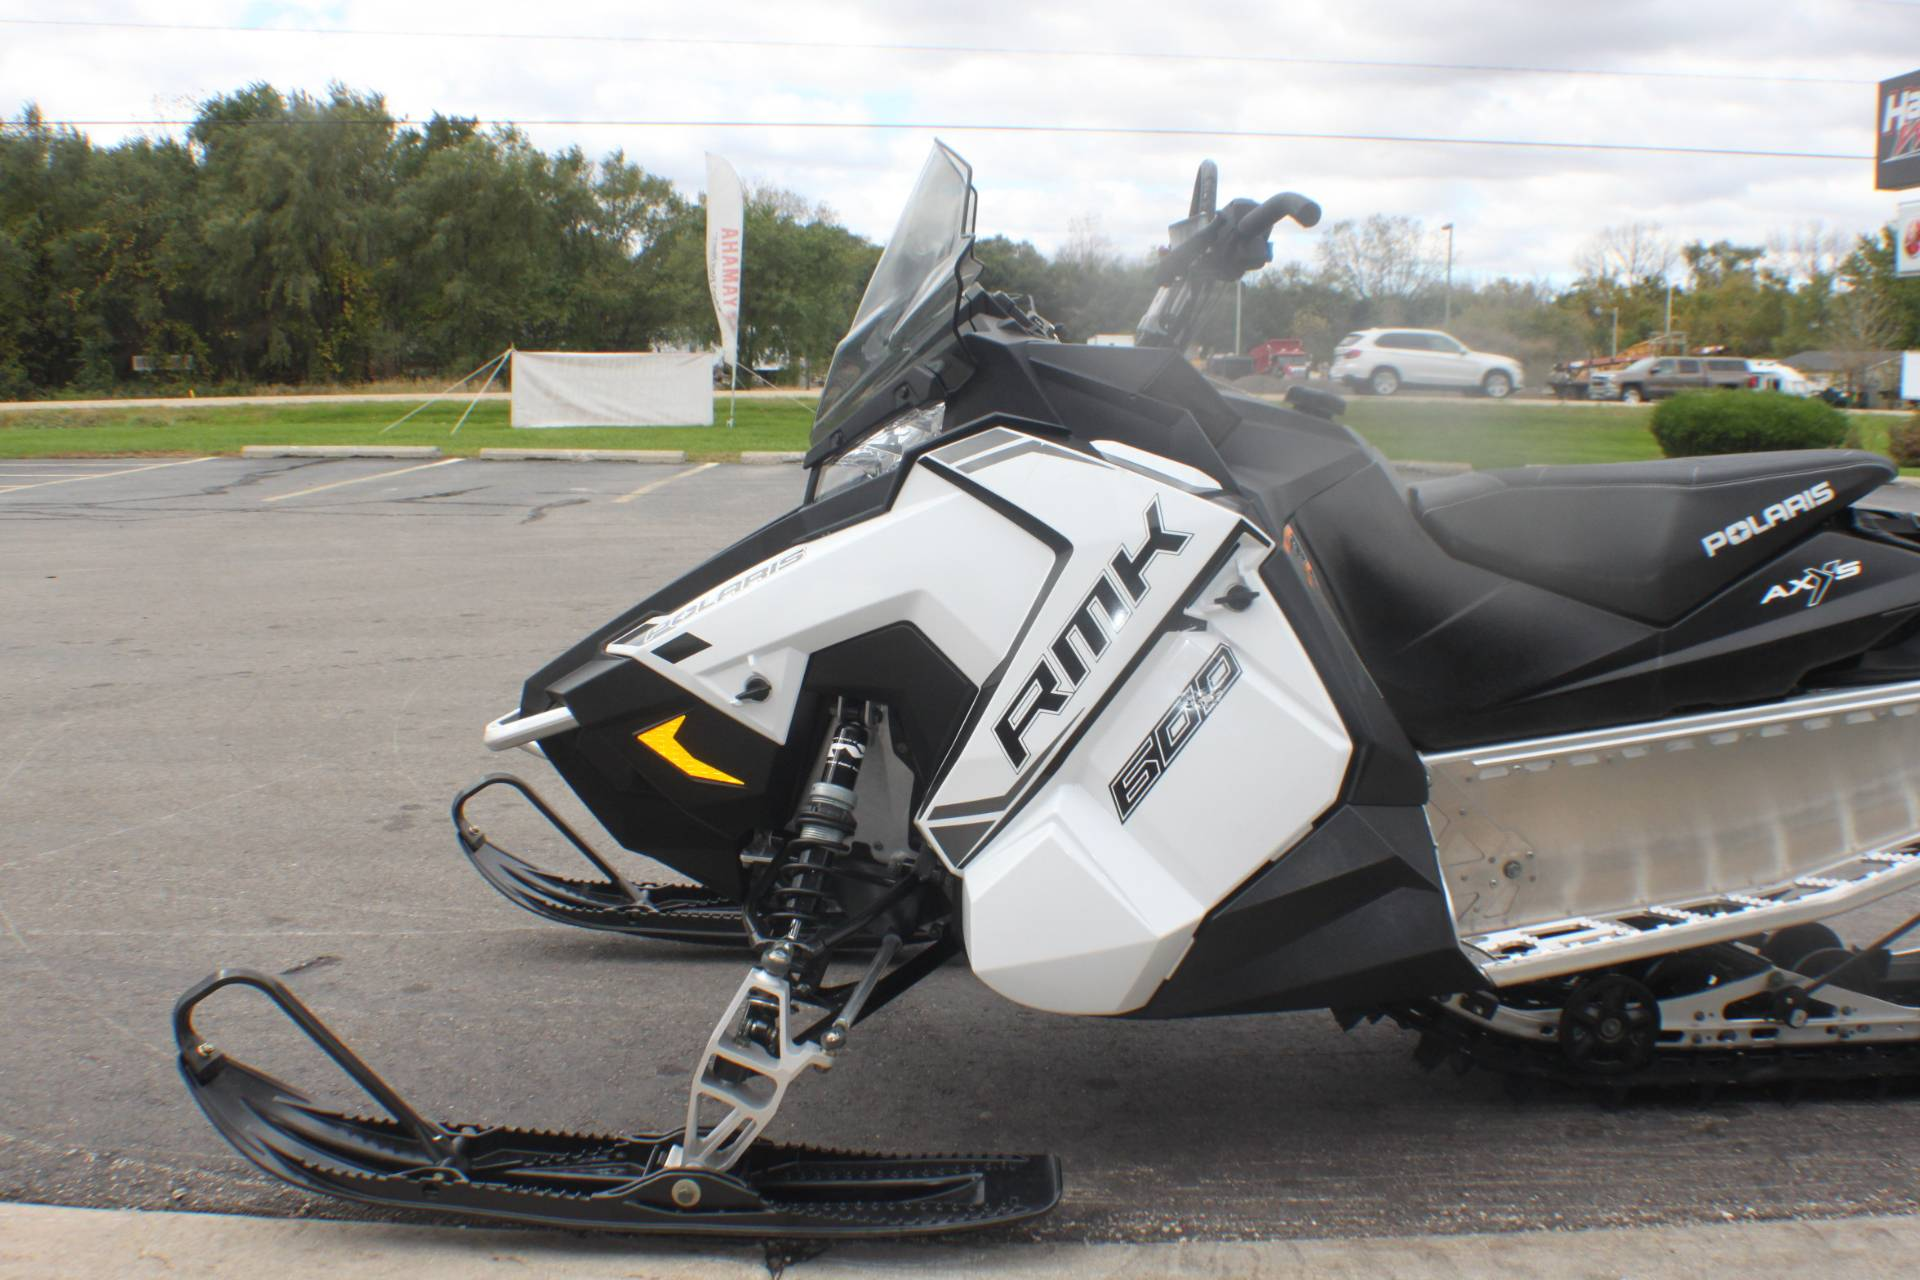 2019 Polaris 600 RMK 144 ES in Janesville, Wisconsin - Photo 19